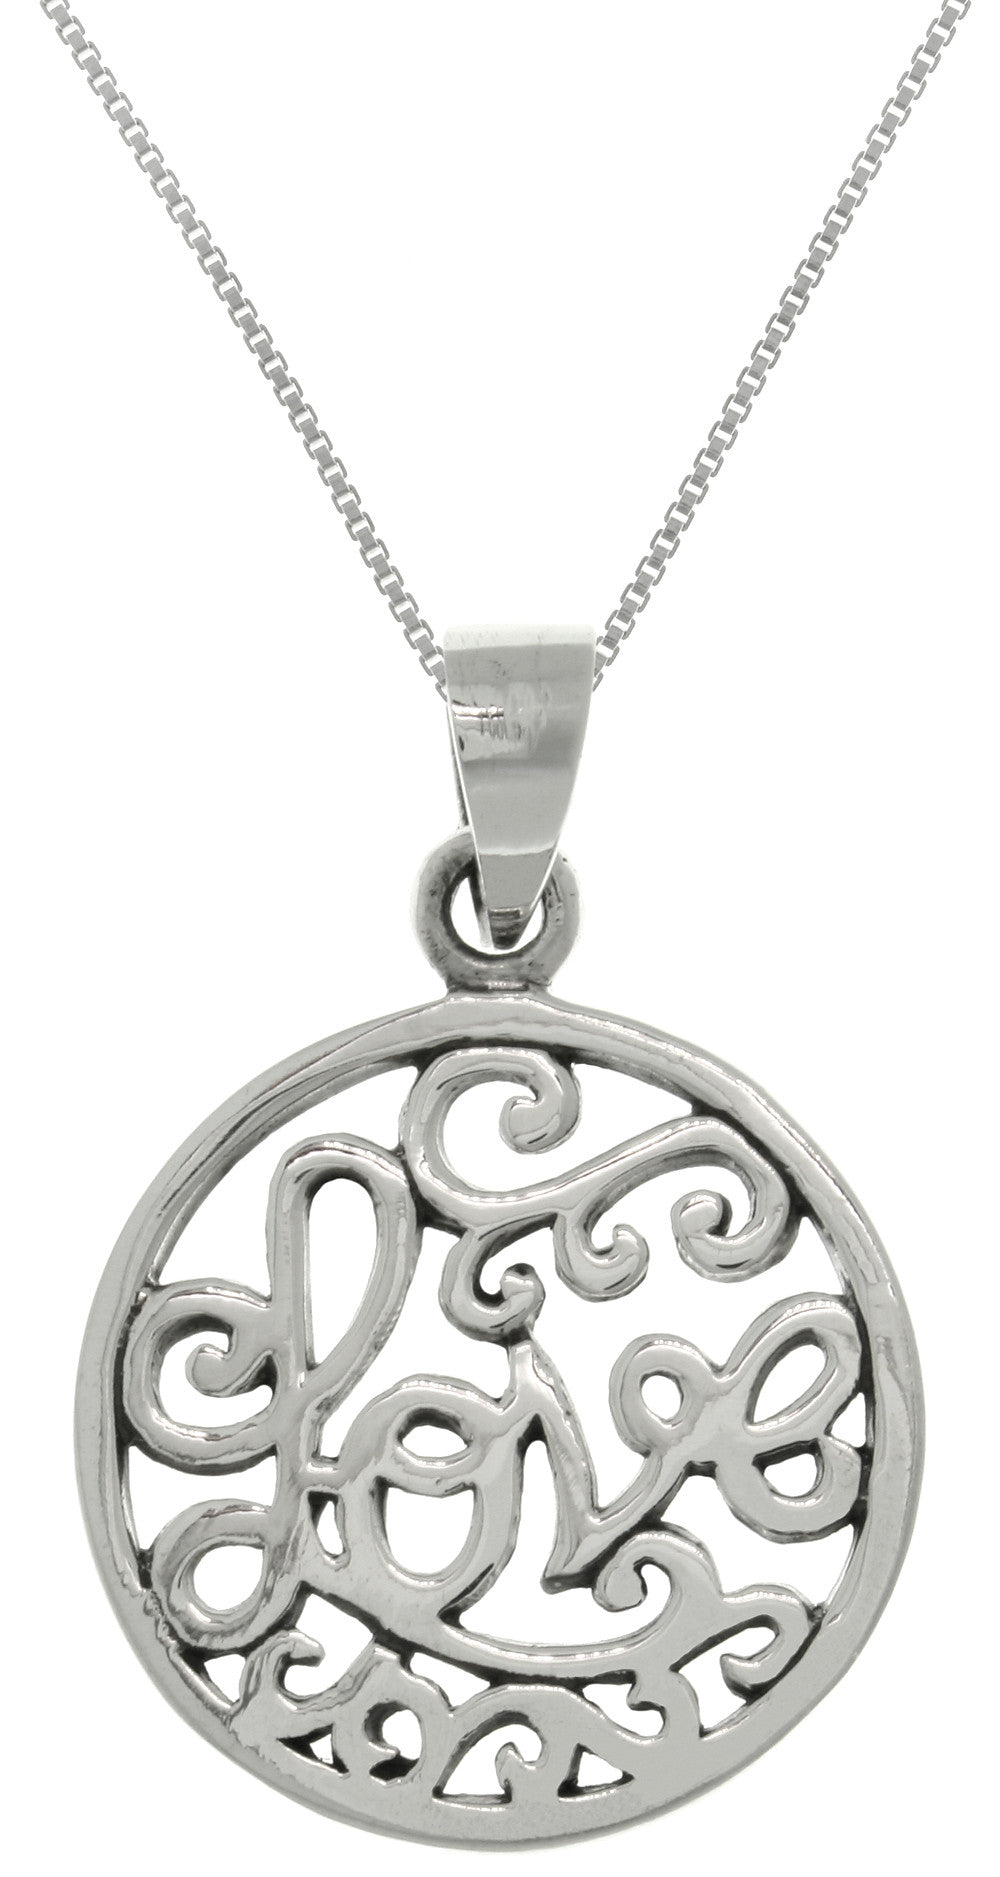 Jewelry Trends Sterling Silver Love Word Round Pendant on 18 Inch Box Chain Necklace Valentine's Day Gift